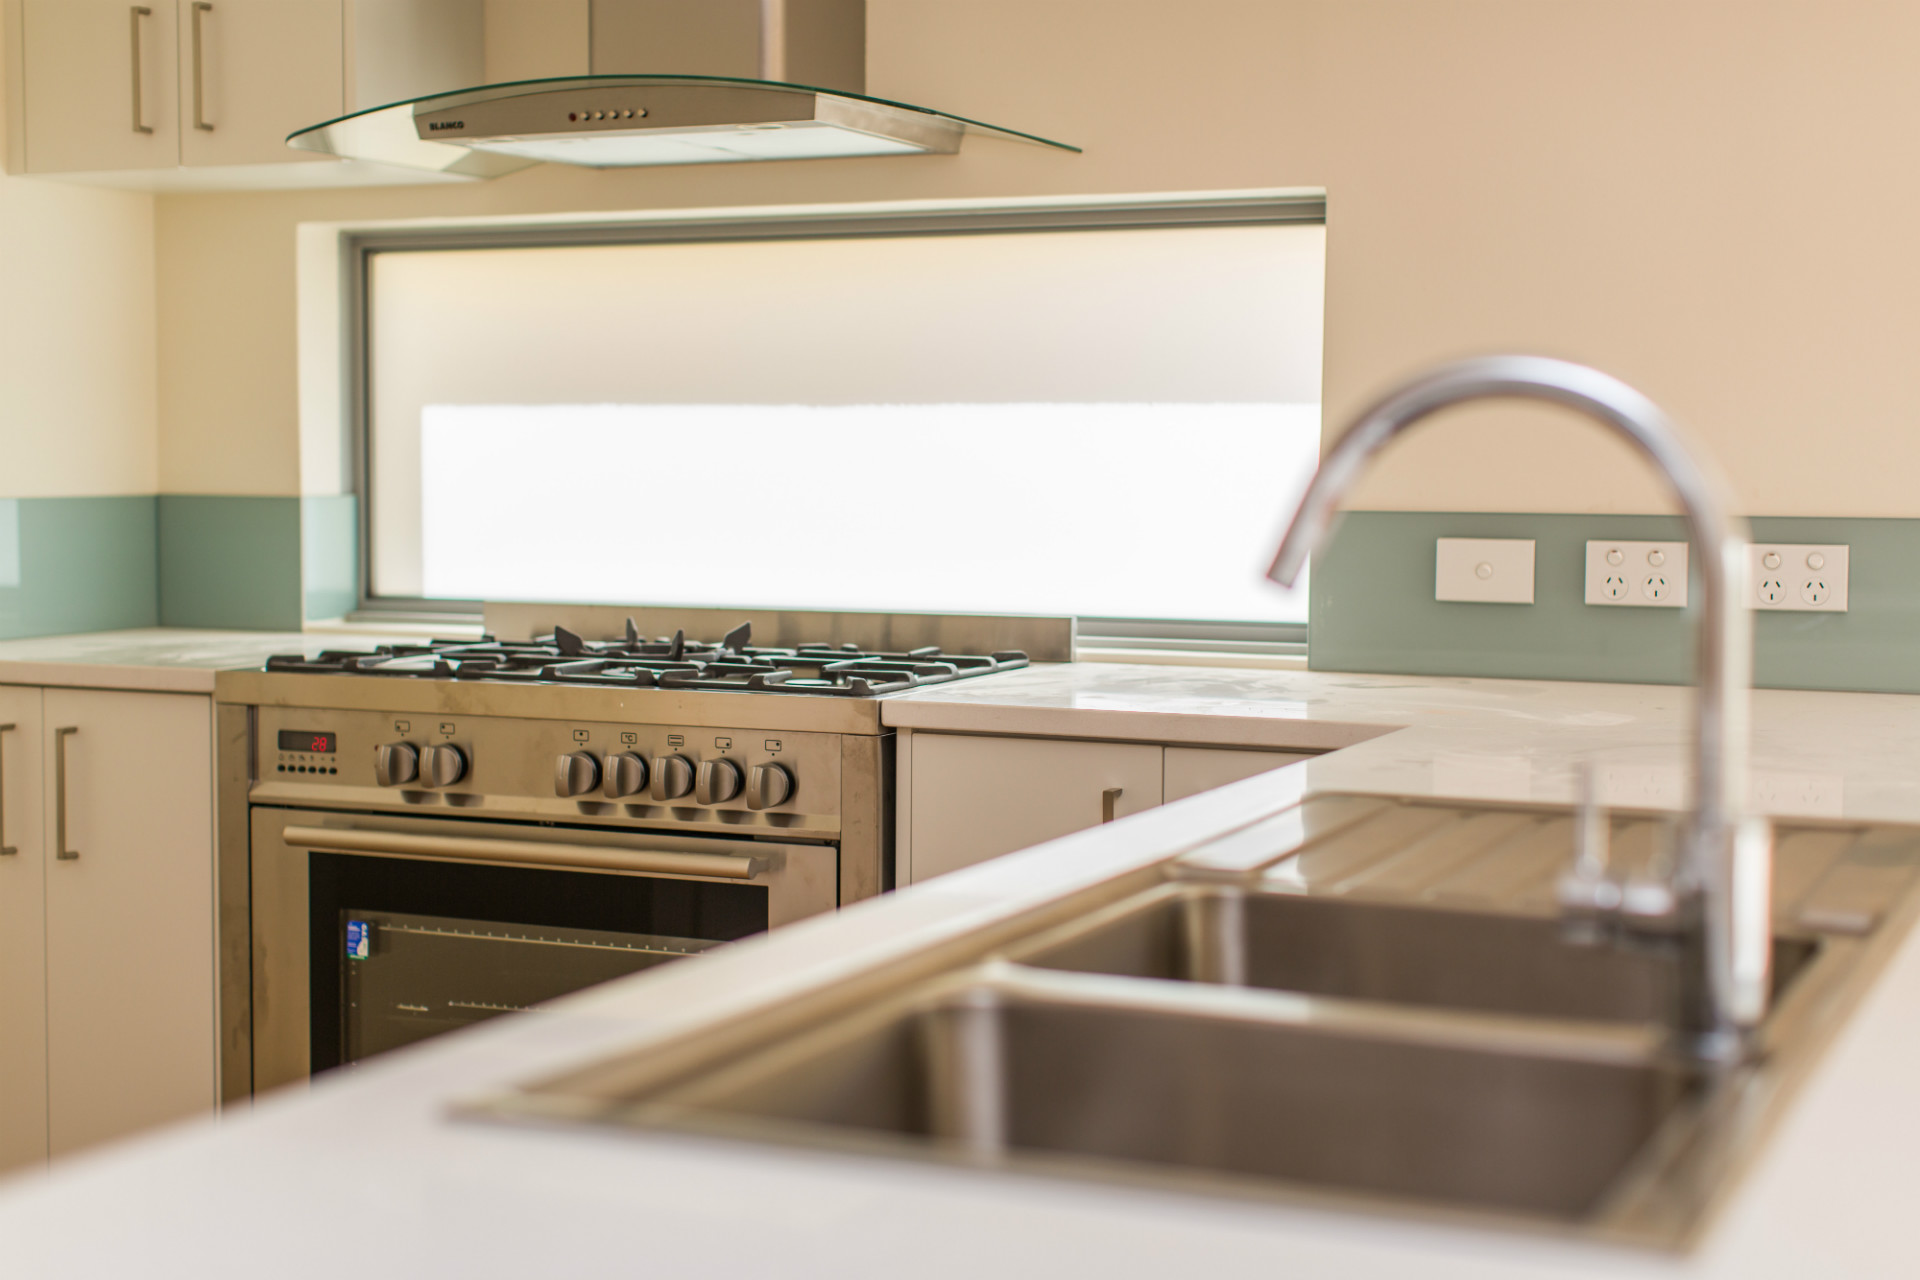 kitchen-design-gallery-of-curved-glass-canopy-range-hood-900-wide-free-standing-oven-and-frosted-glass-splashback